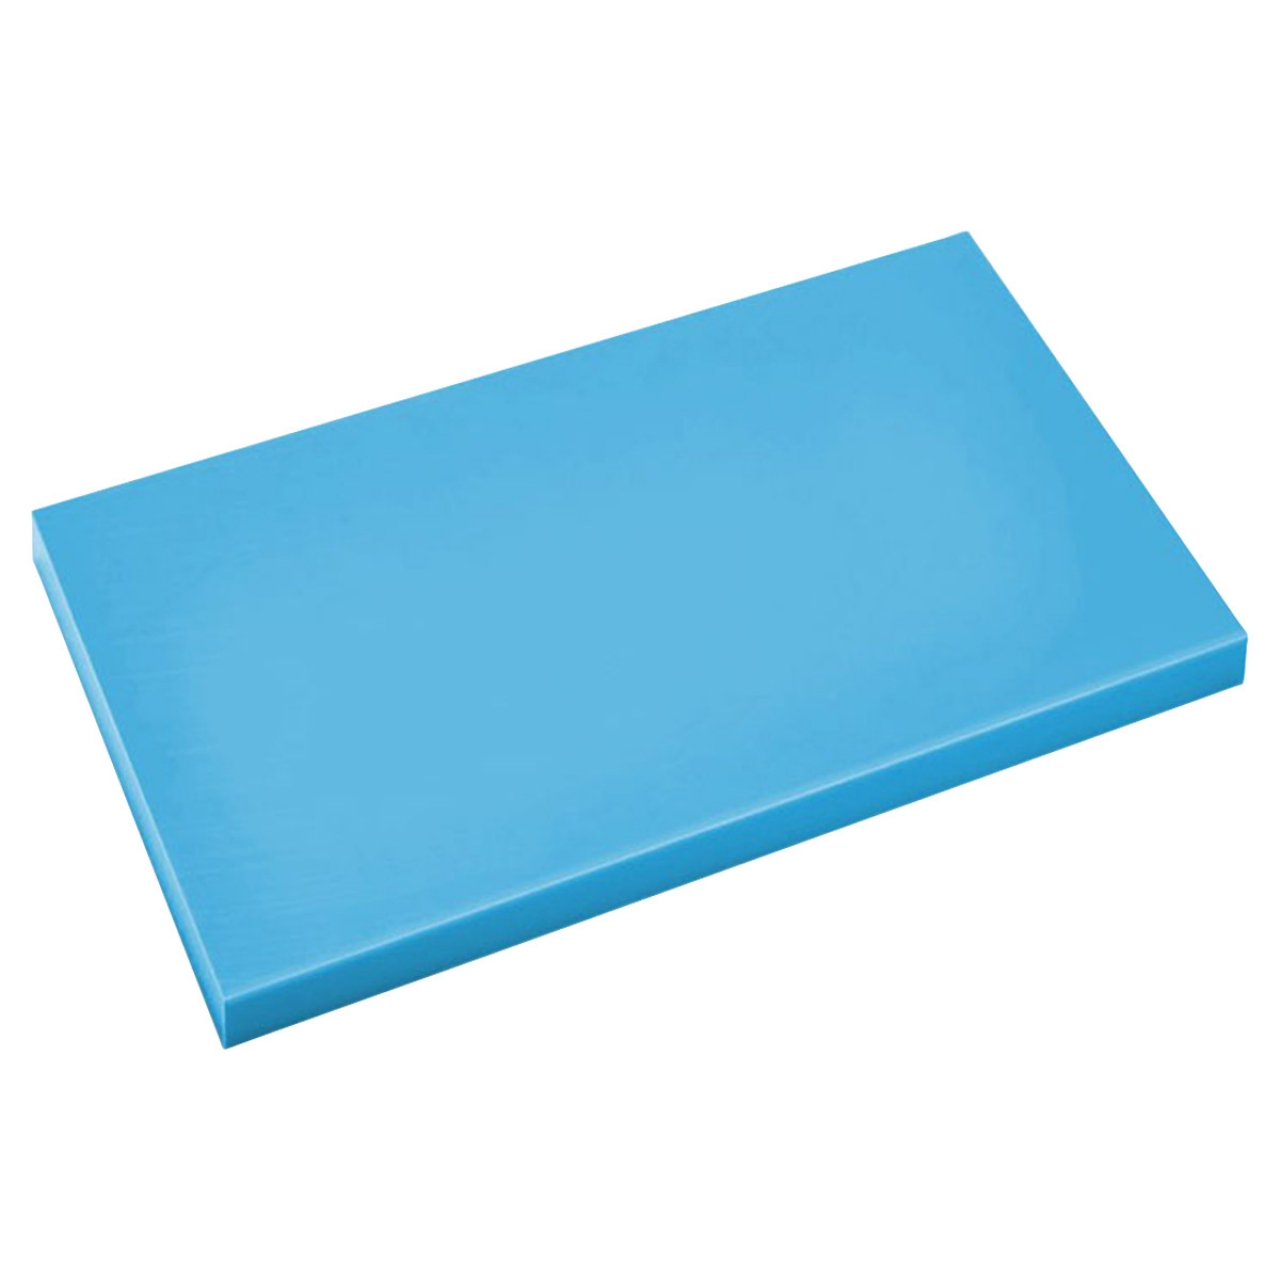 Cutting board 40x60cm blue